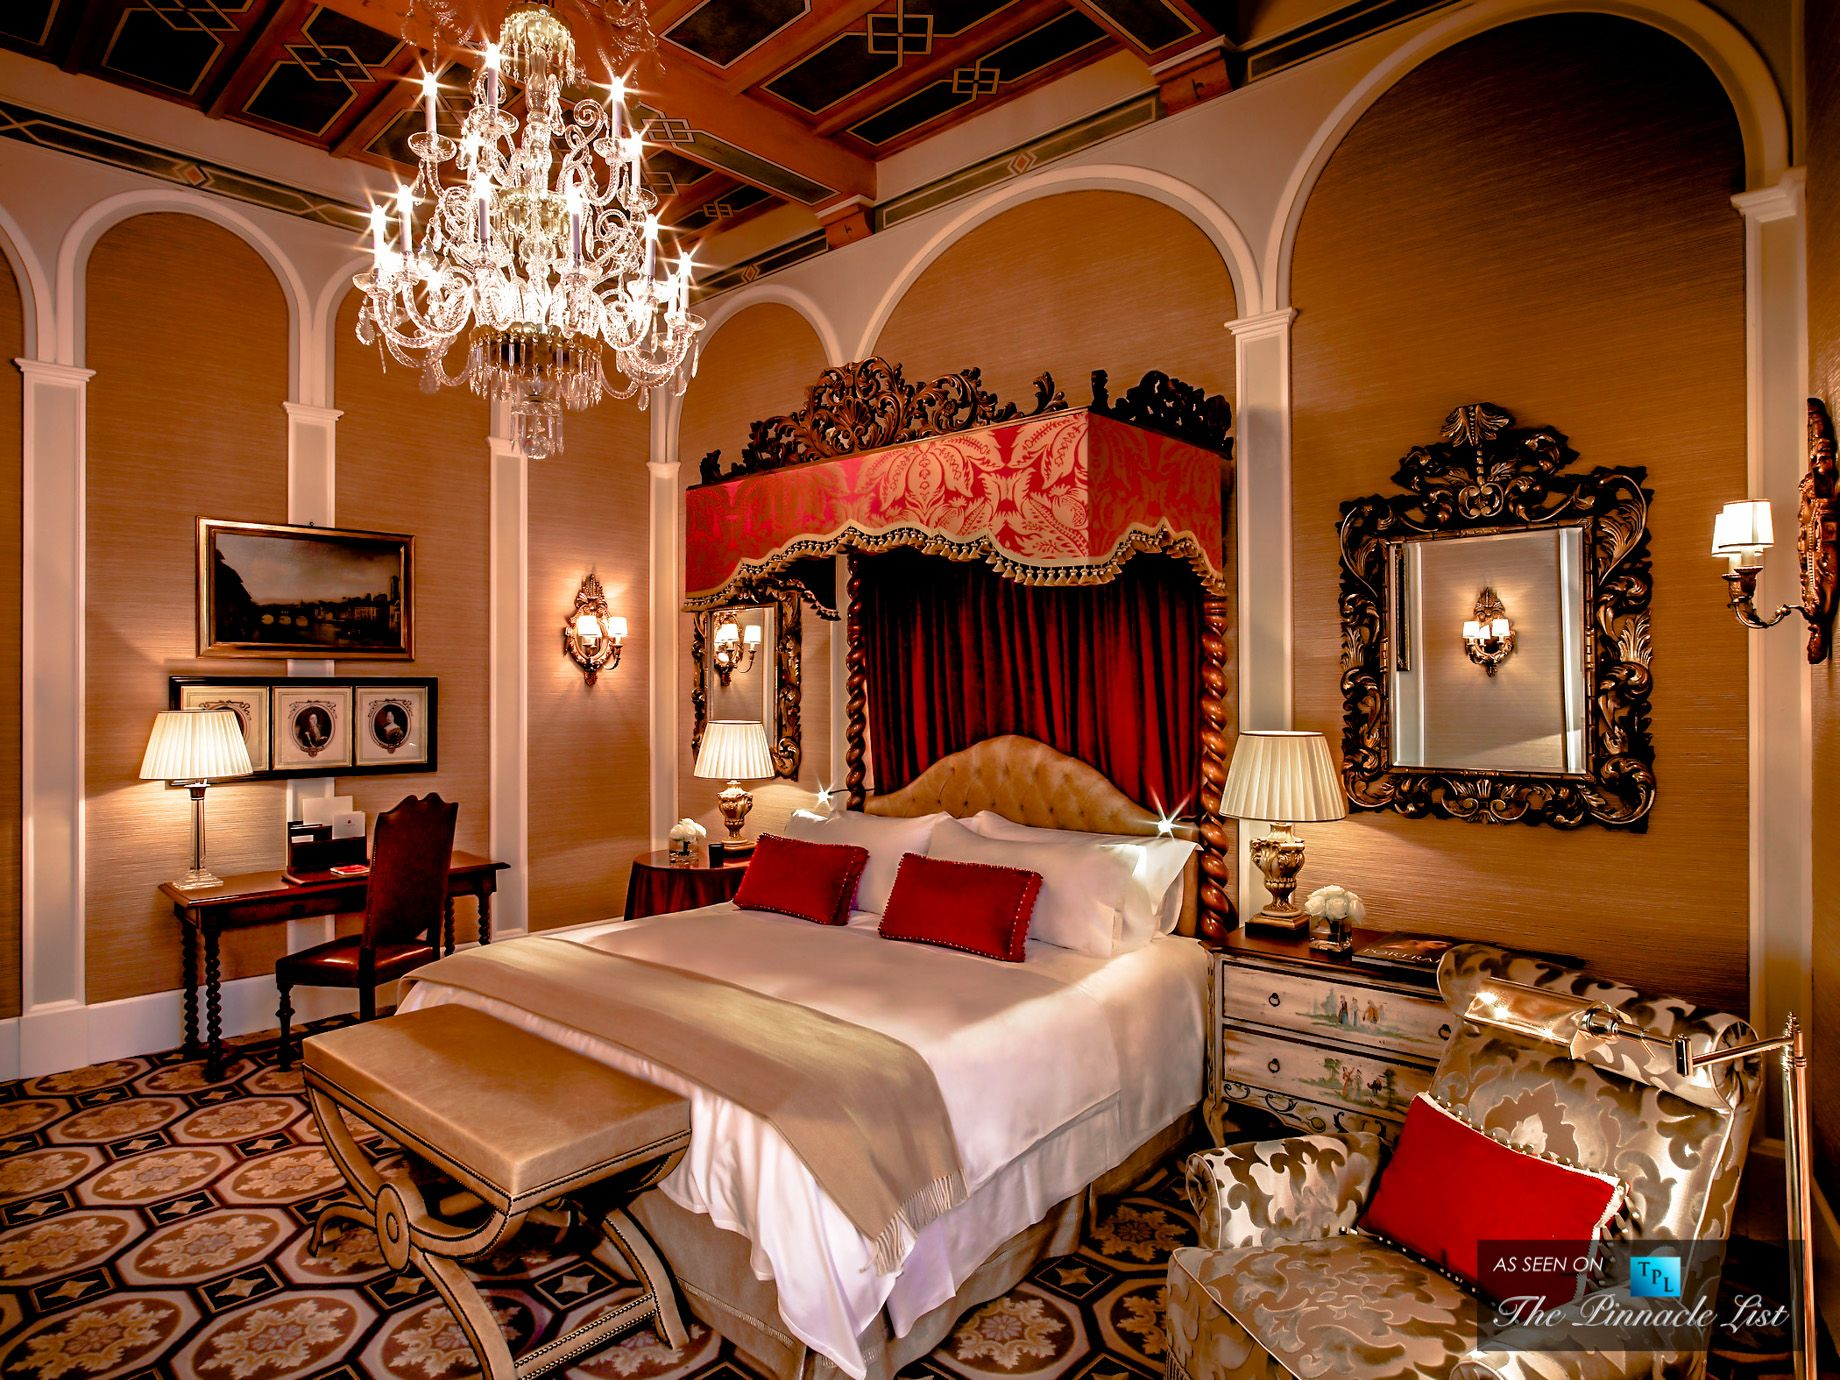 st regis luxury hotel florence italy premium deluxe renaissance style rooms pinterest. Black Bedroom Furniture Sets. Home Design Ideas